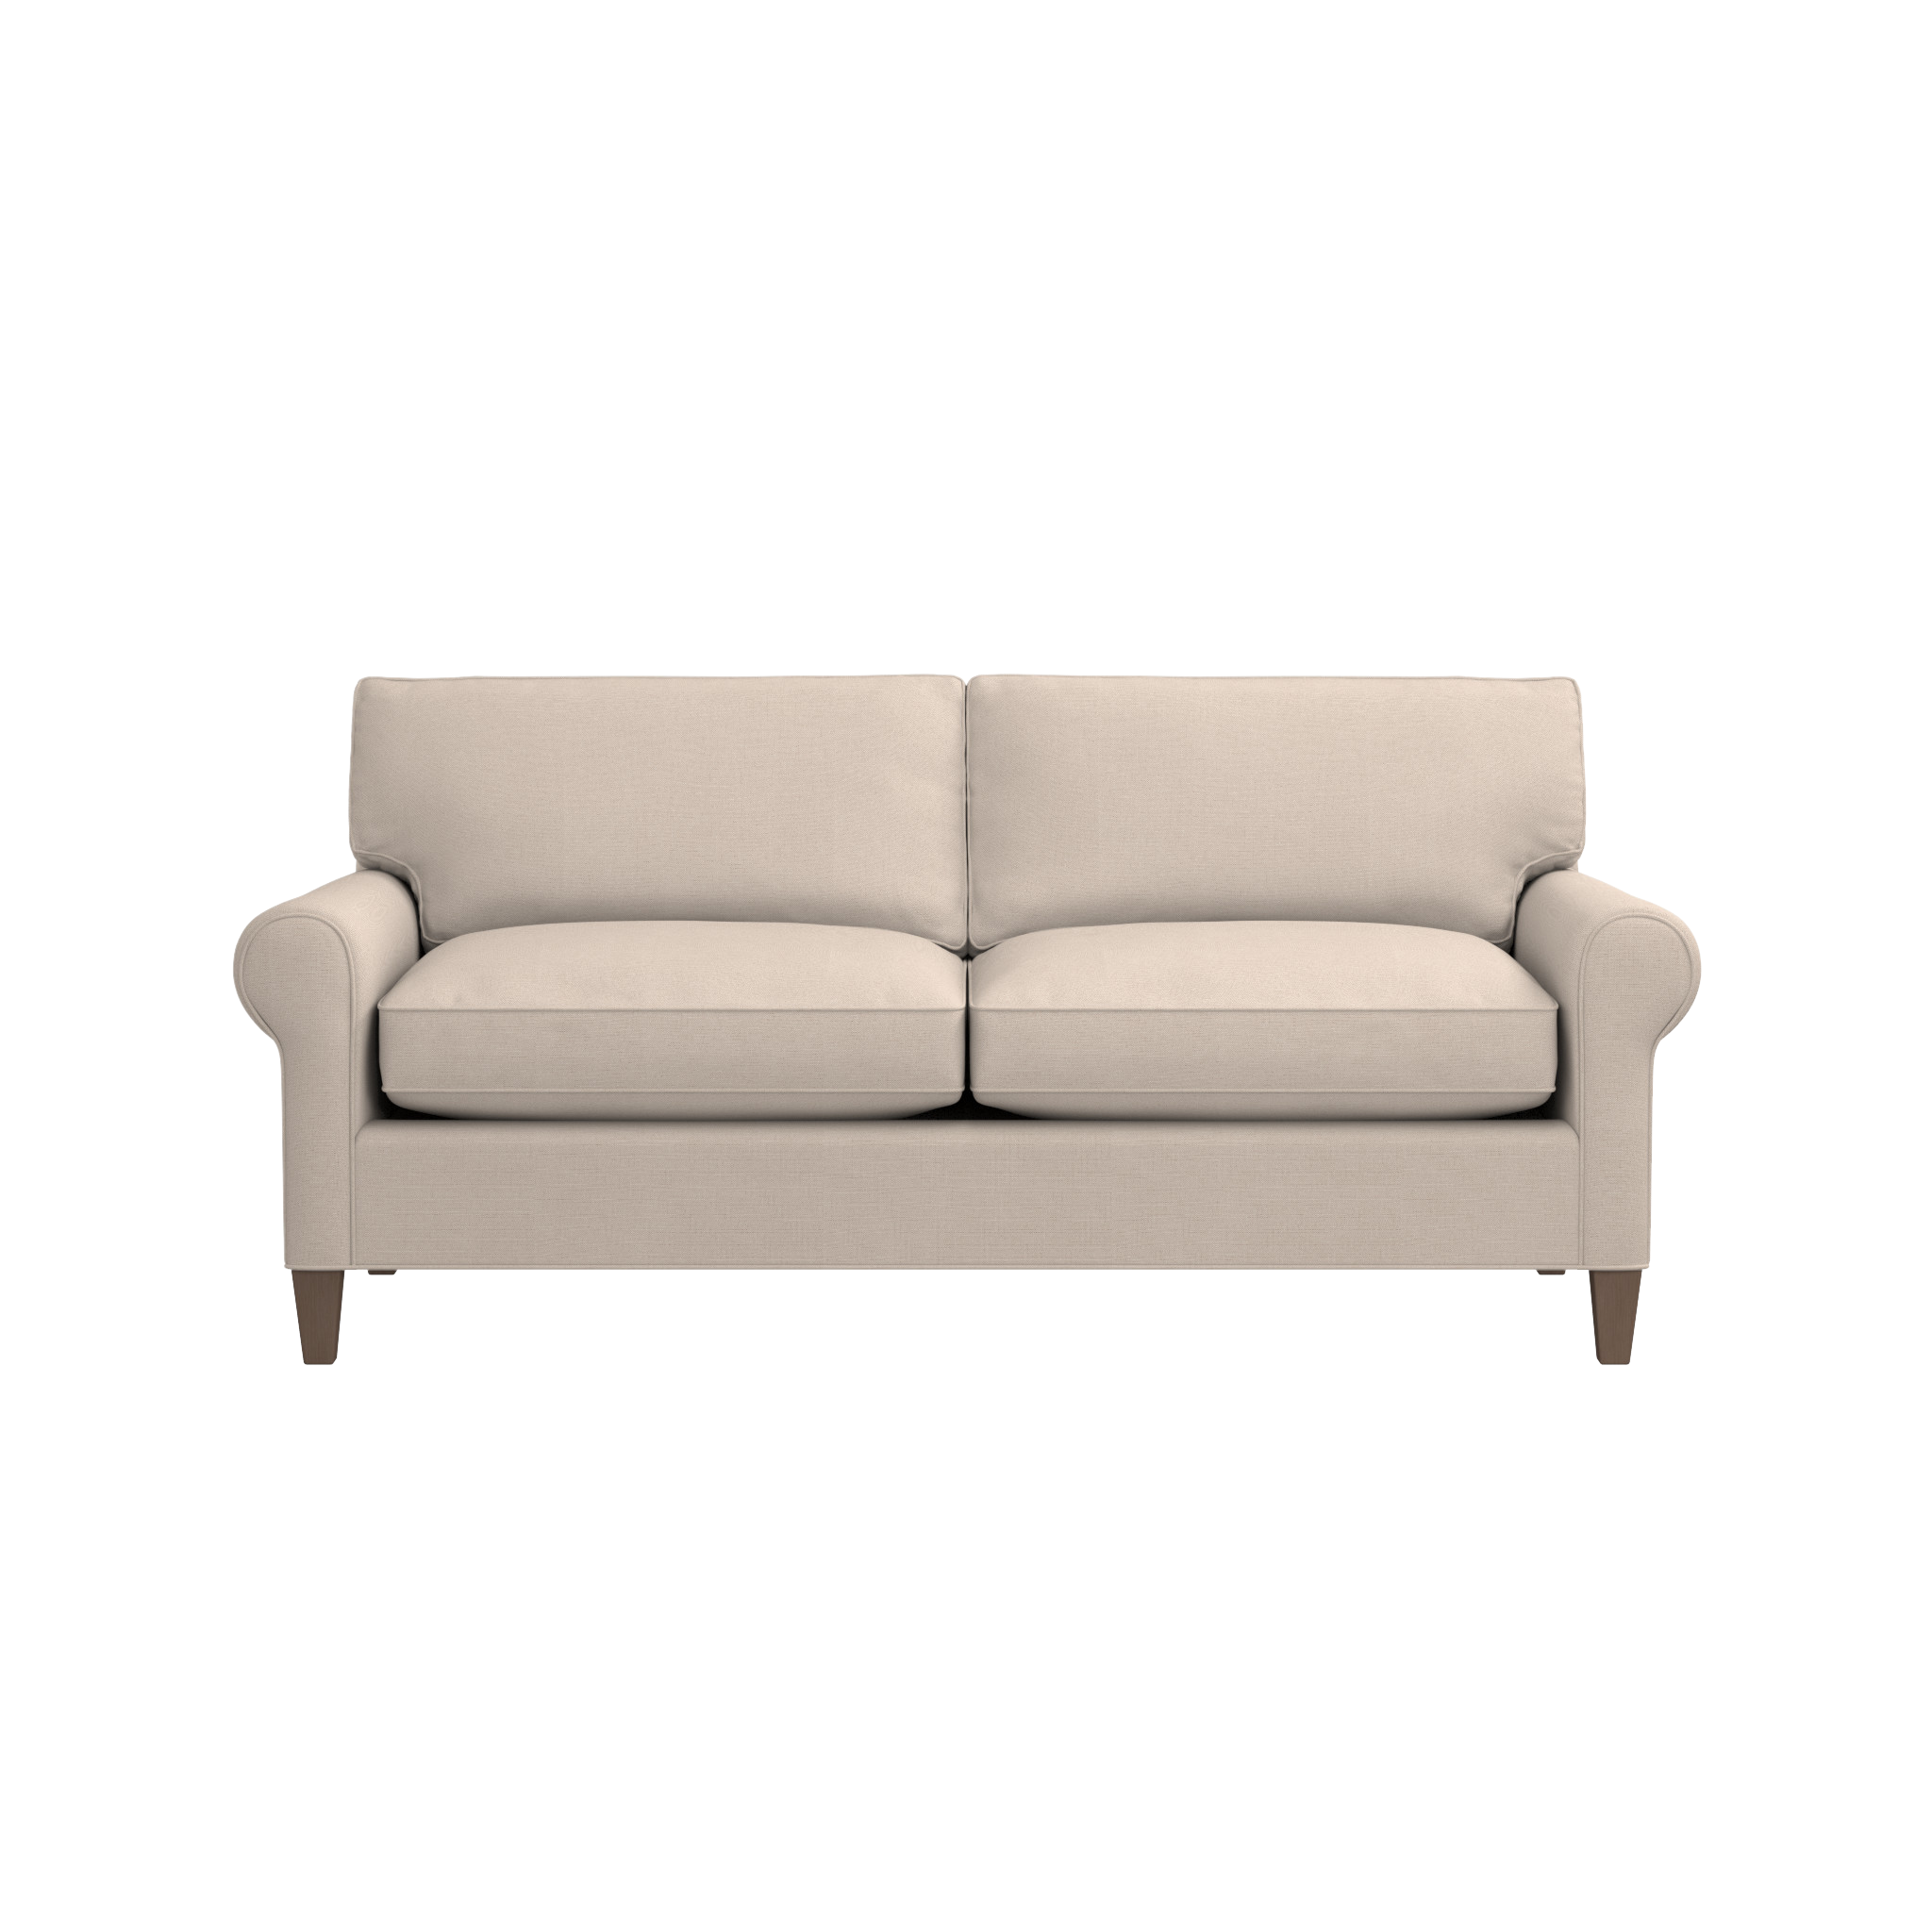 Shop Montclair Apartment Sofa Soft But Supportive Cushions Are